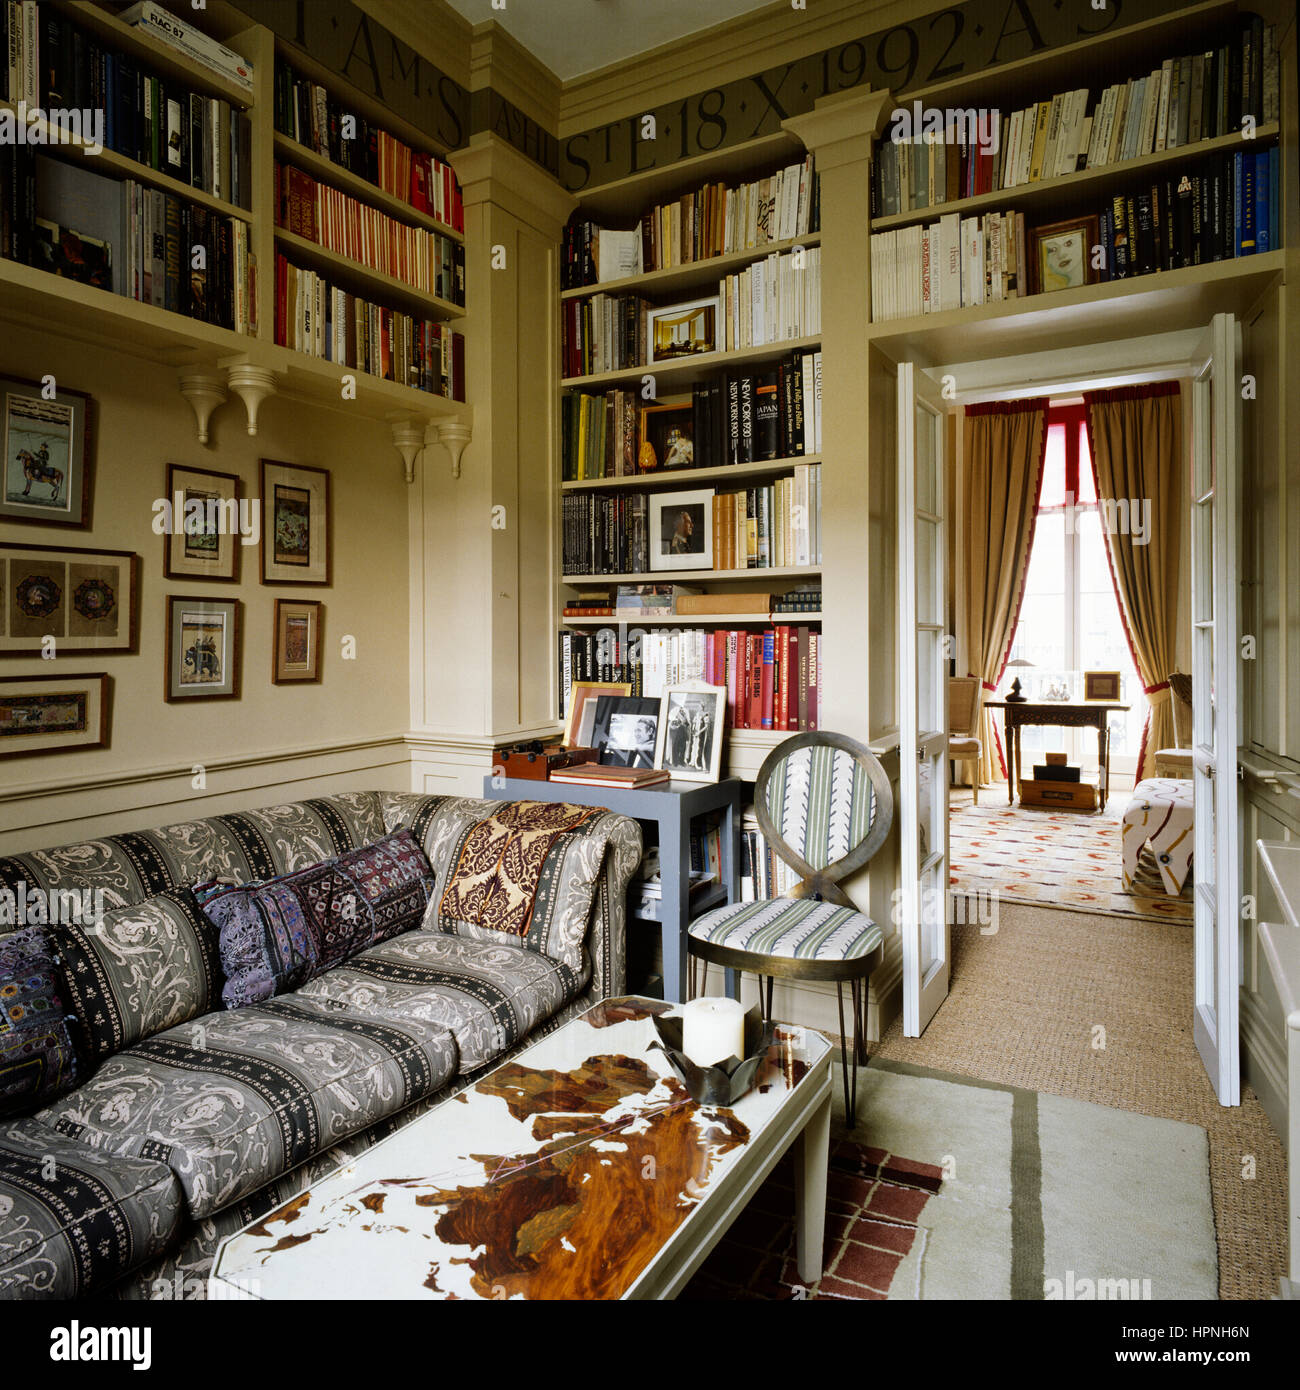 A living room with bookshelves. - Stock Image